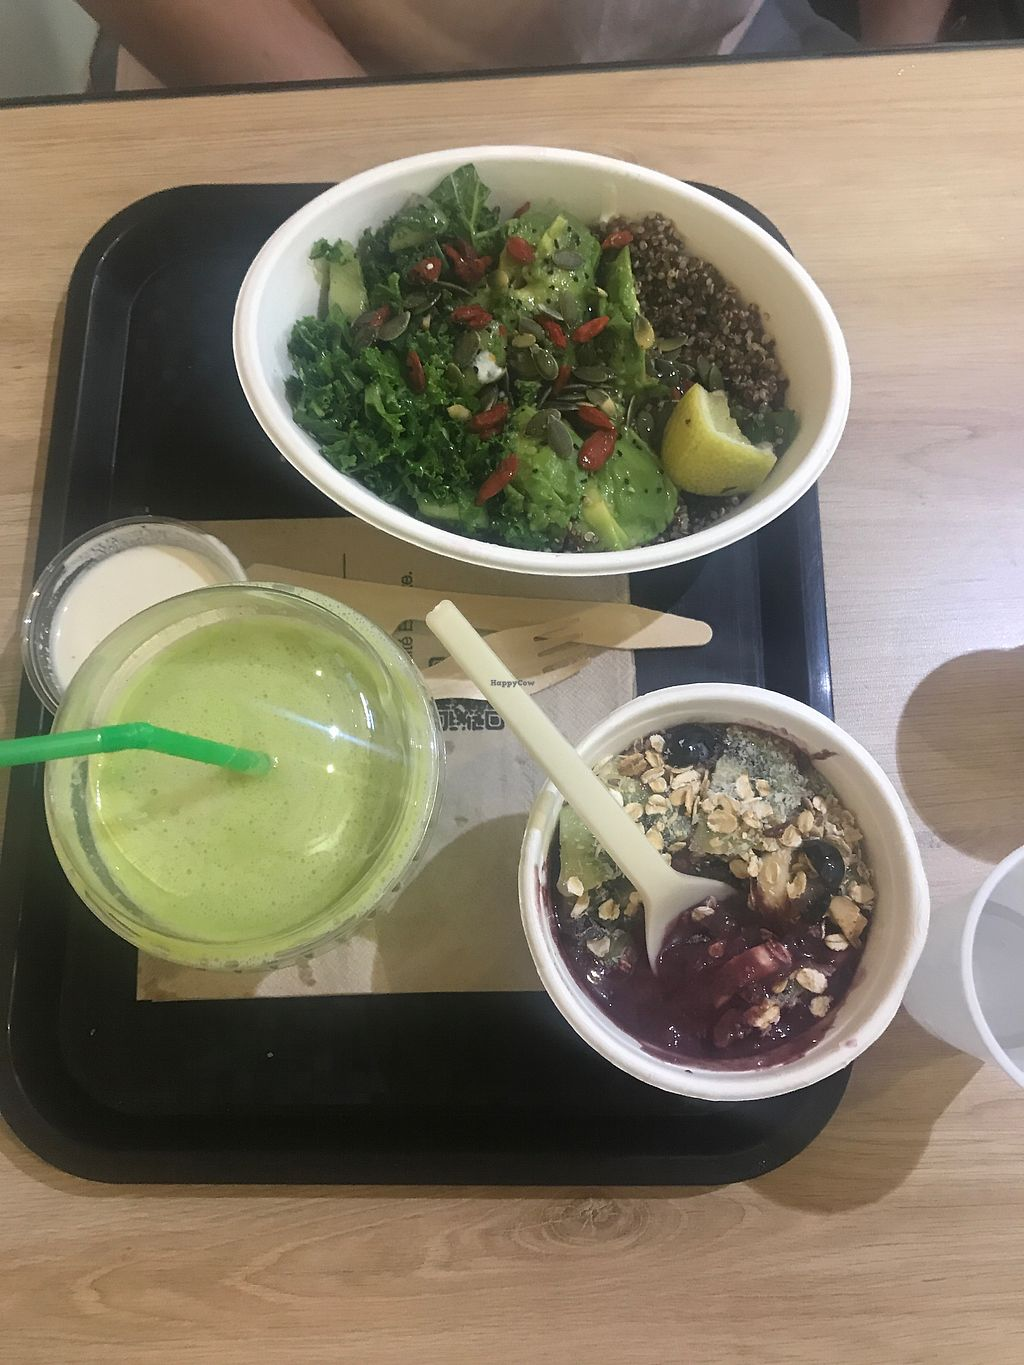 """Photo of Ensuite  by <a href=""""/members/profile/lismageese"""">lismageese</a> <br/>green juice, cashew sauce, kiwi kale salad and acai bowl  <br/> August 21, 2017  - <a href='/contact/abuse/image/82825/295297'>Report</a>"""